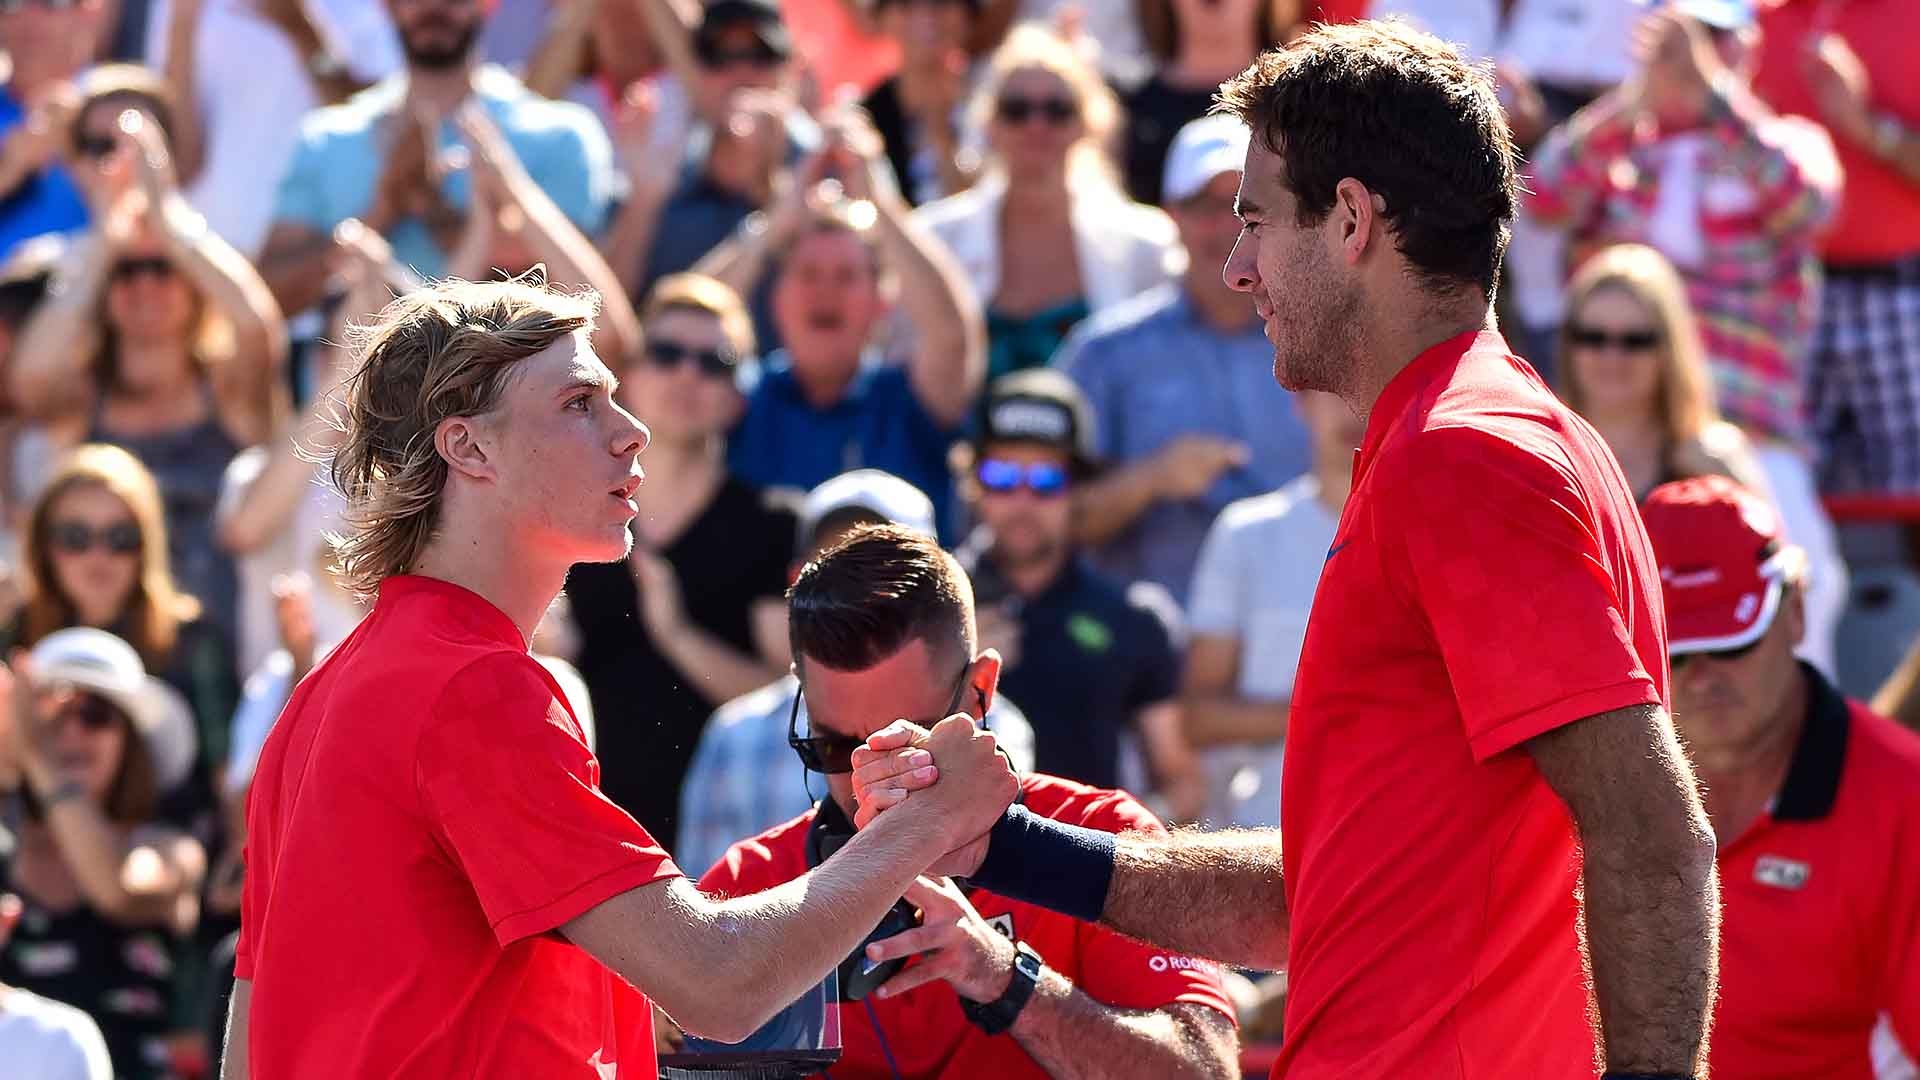 Denis Shapovalov and Juan Martin del Potro will meet in the Fever-Tree Championships first round.